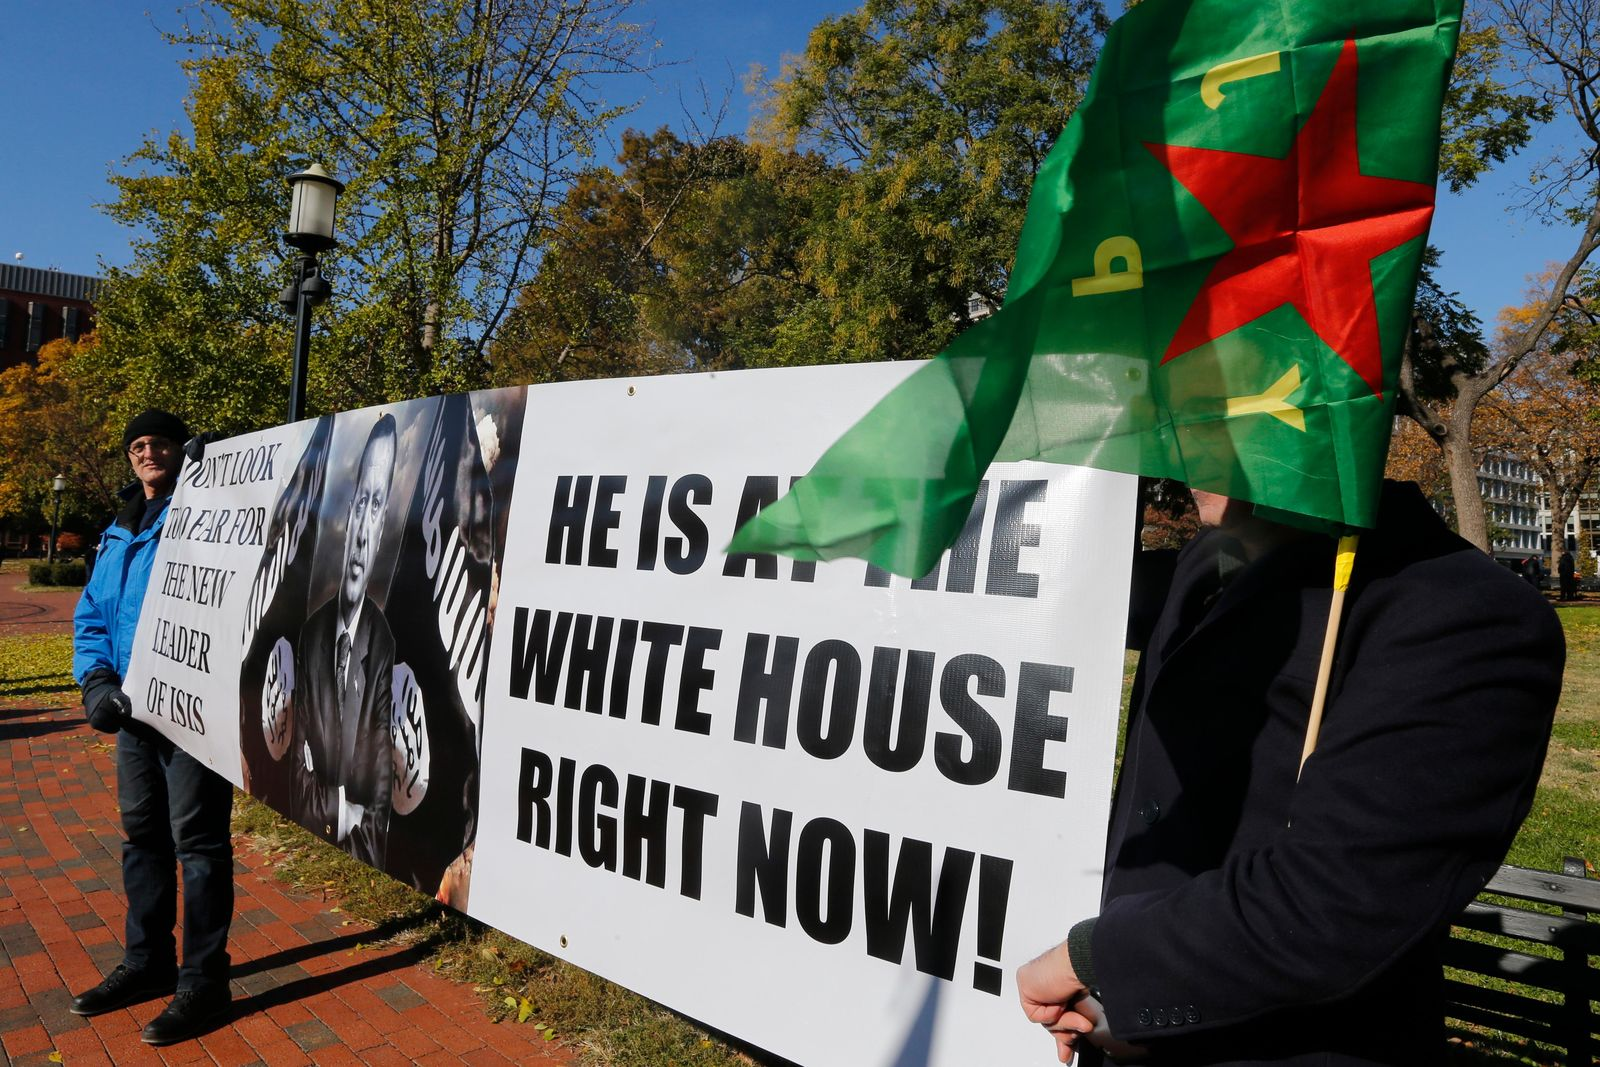 A small group of protesters hold signs as they prepare for a rally against Turkish President Recep Tayyip Erdogan at Lafayette Square park in front of the White House in Wednesday, Nov. 13, 2019, in Washington. (AP Photo/Steve Helber)